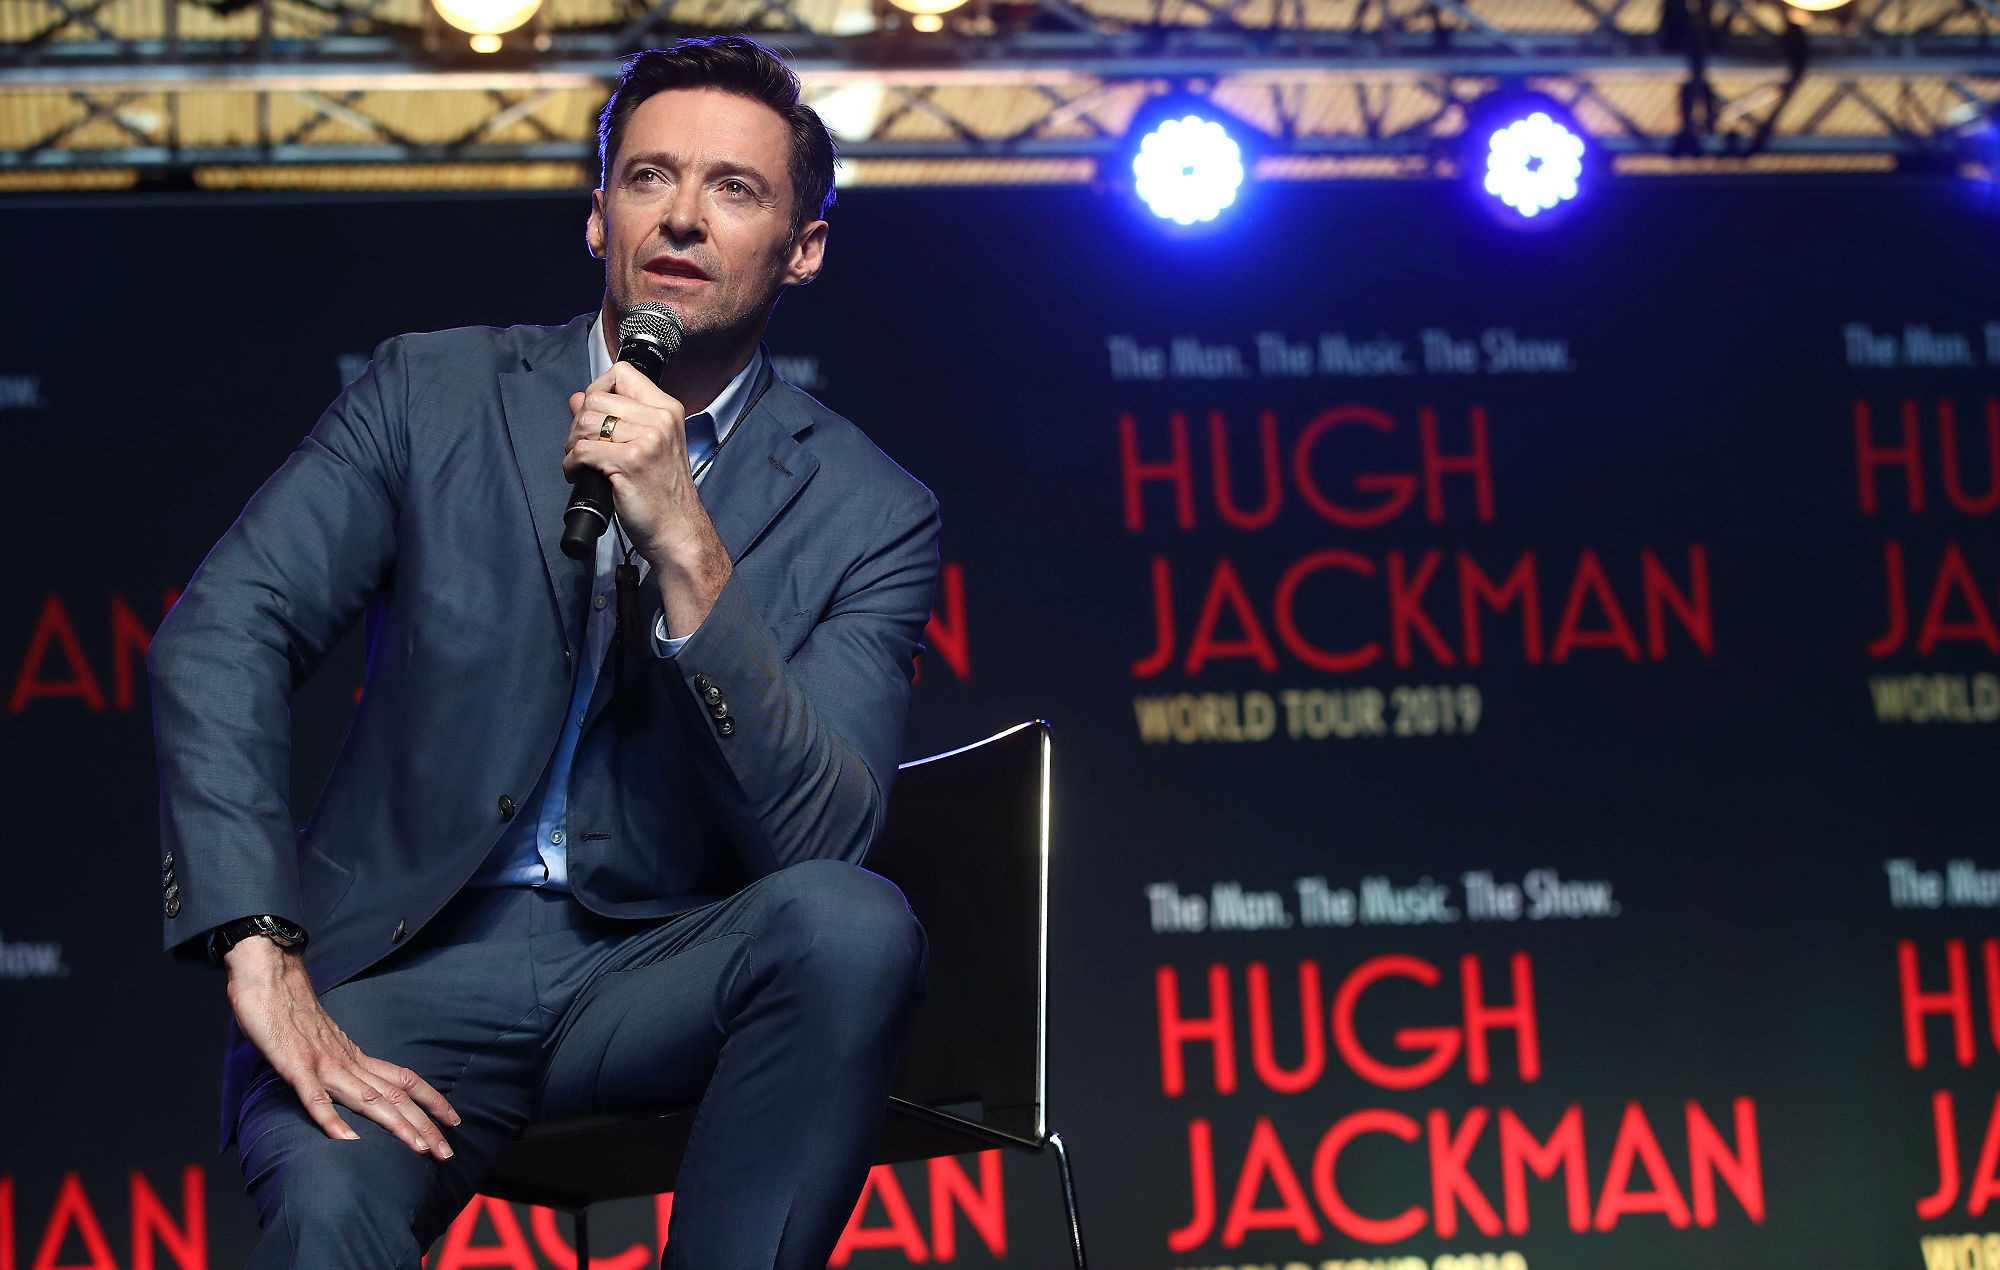 """Hugh Jackman on what """"surprises"""" to expect from his ..."""